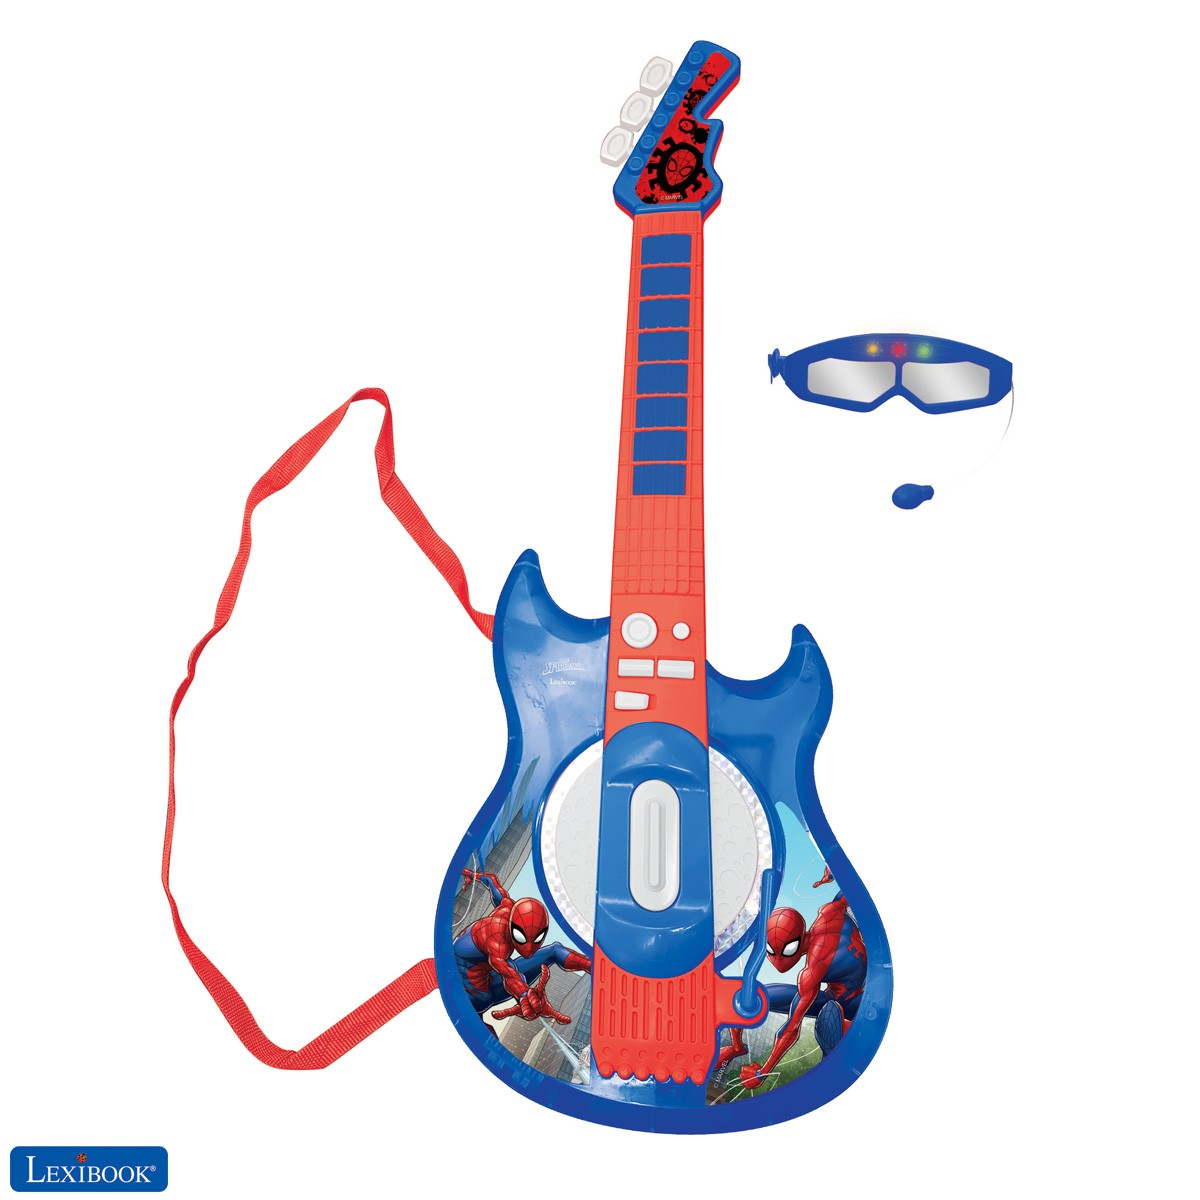 Spider-Man Electronic lighting guitar with mic